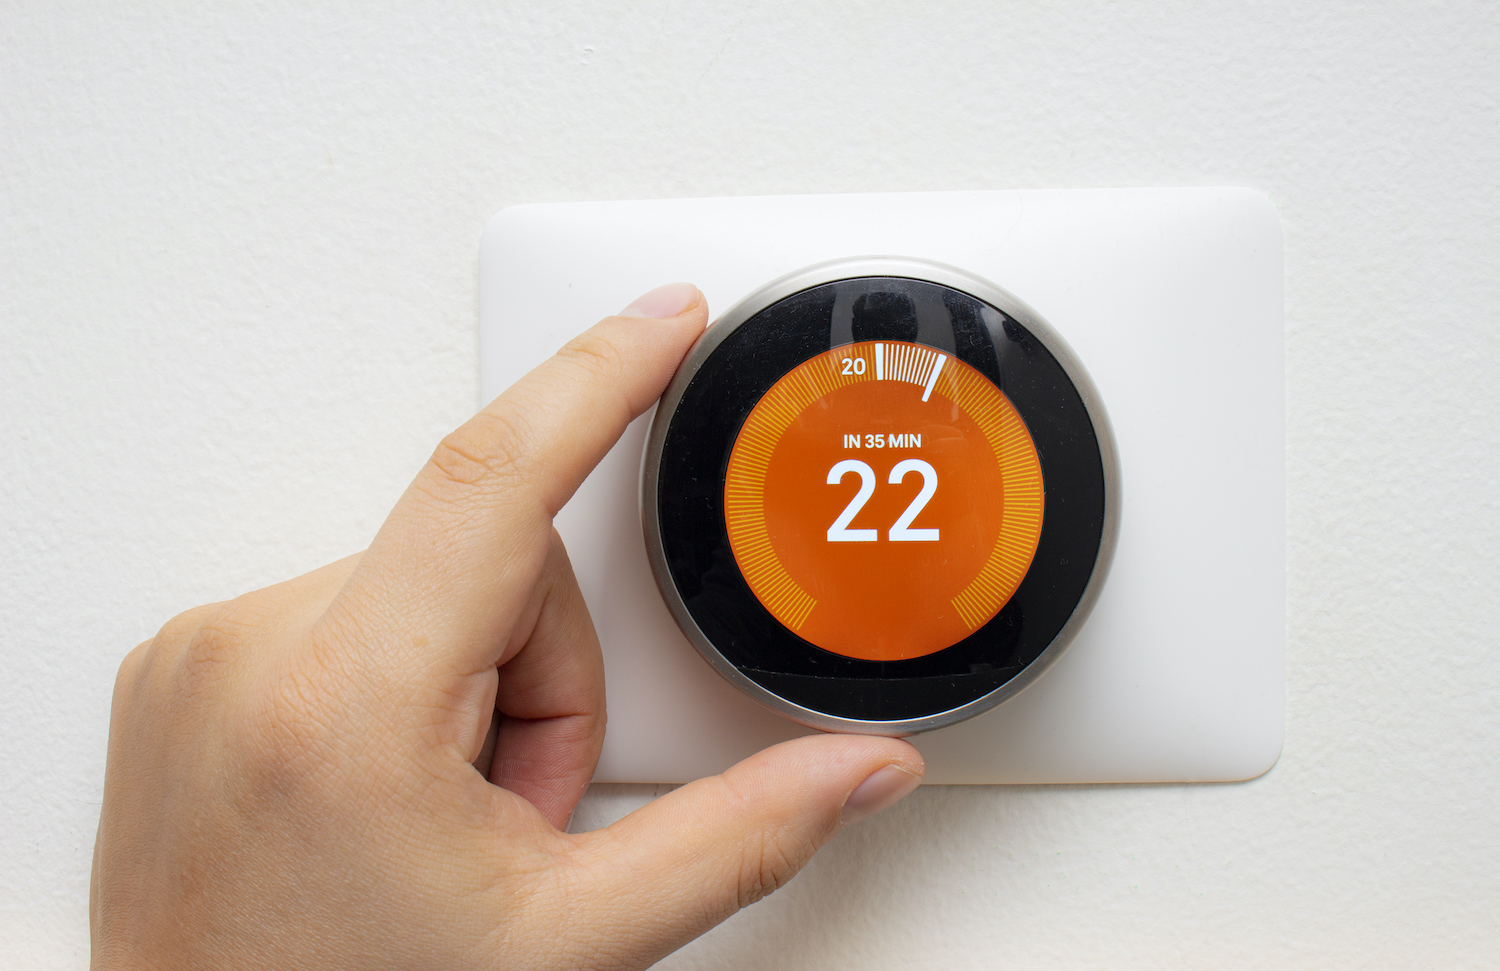 thermostat at your holiday home - keep your heating on